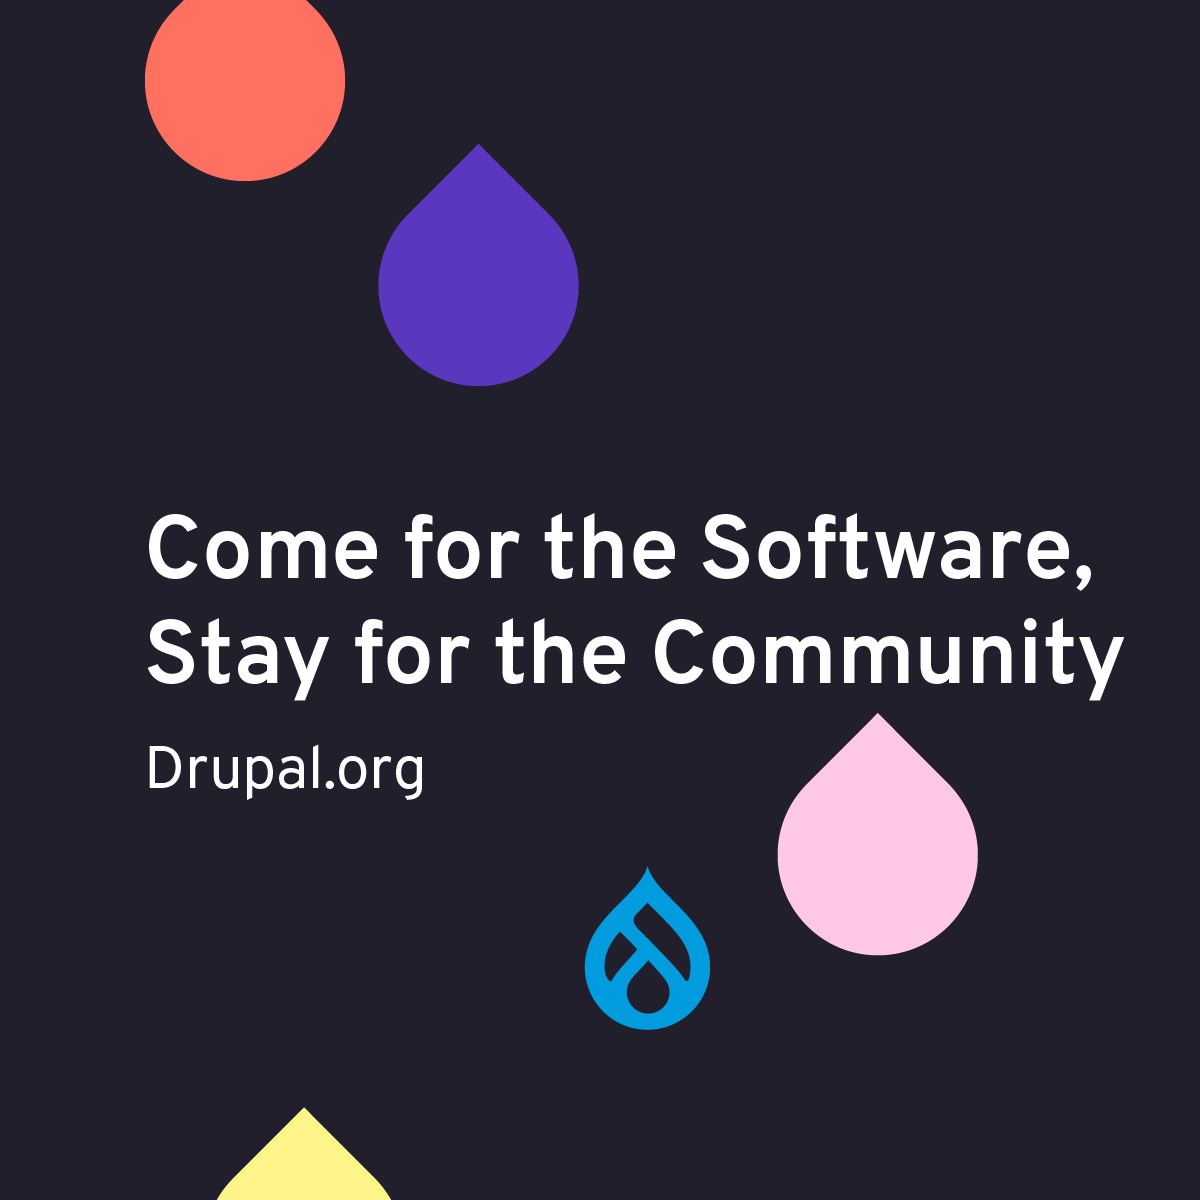 Came for the Software, Stay for the Community